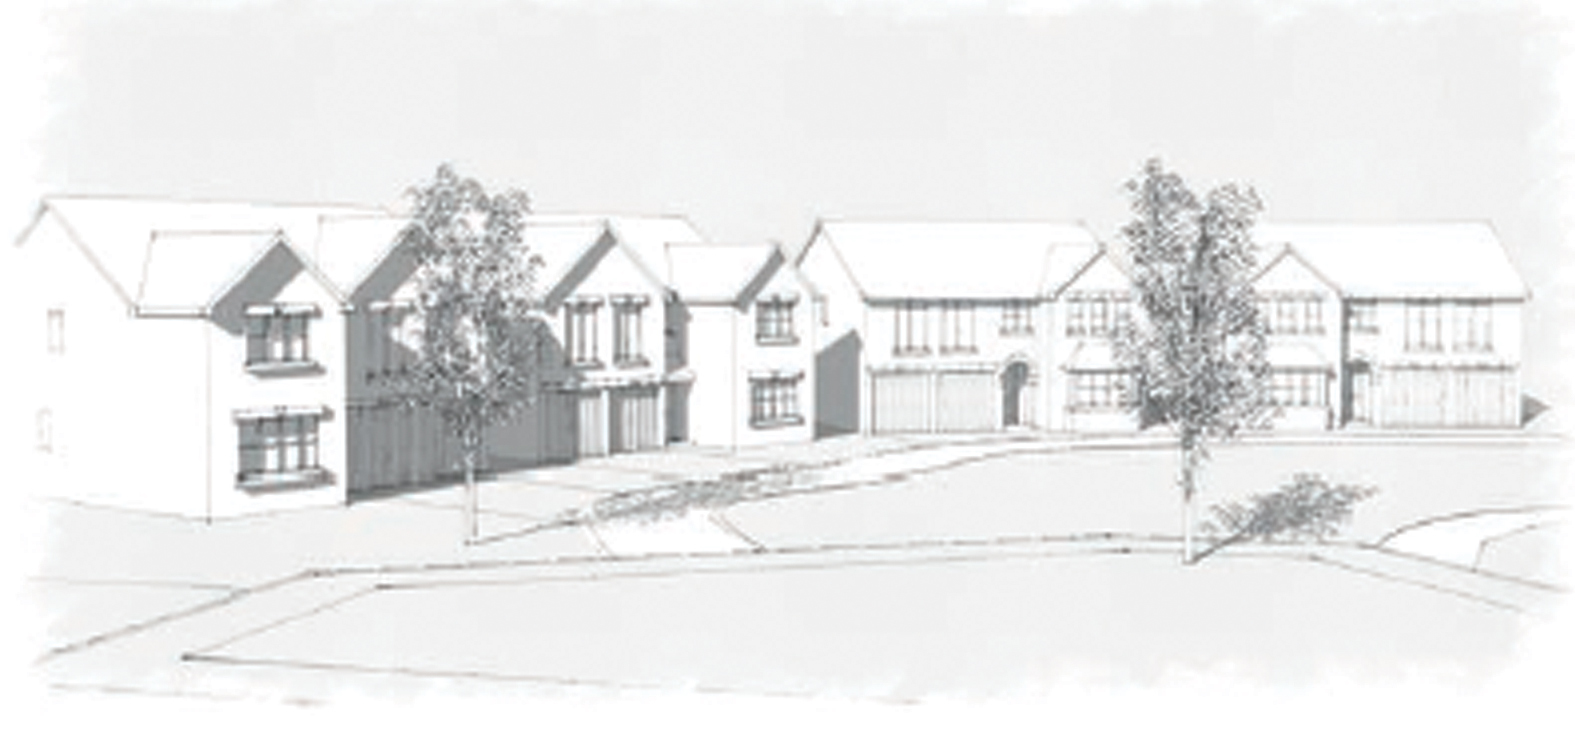 An artist's impression of the 176 homes proposed for the site on the outskirts of Aberdeen in Portlethen.